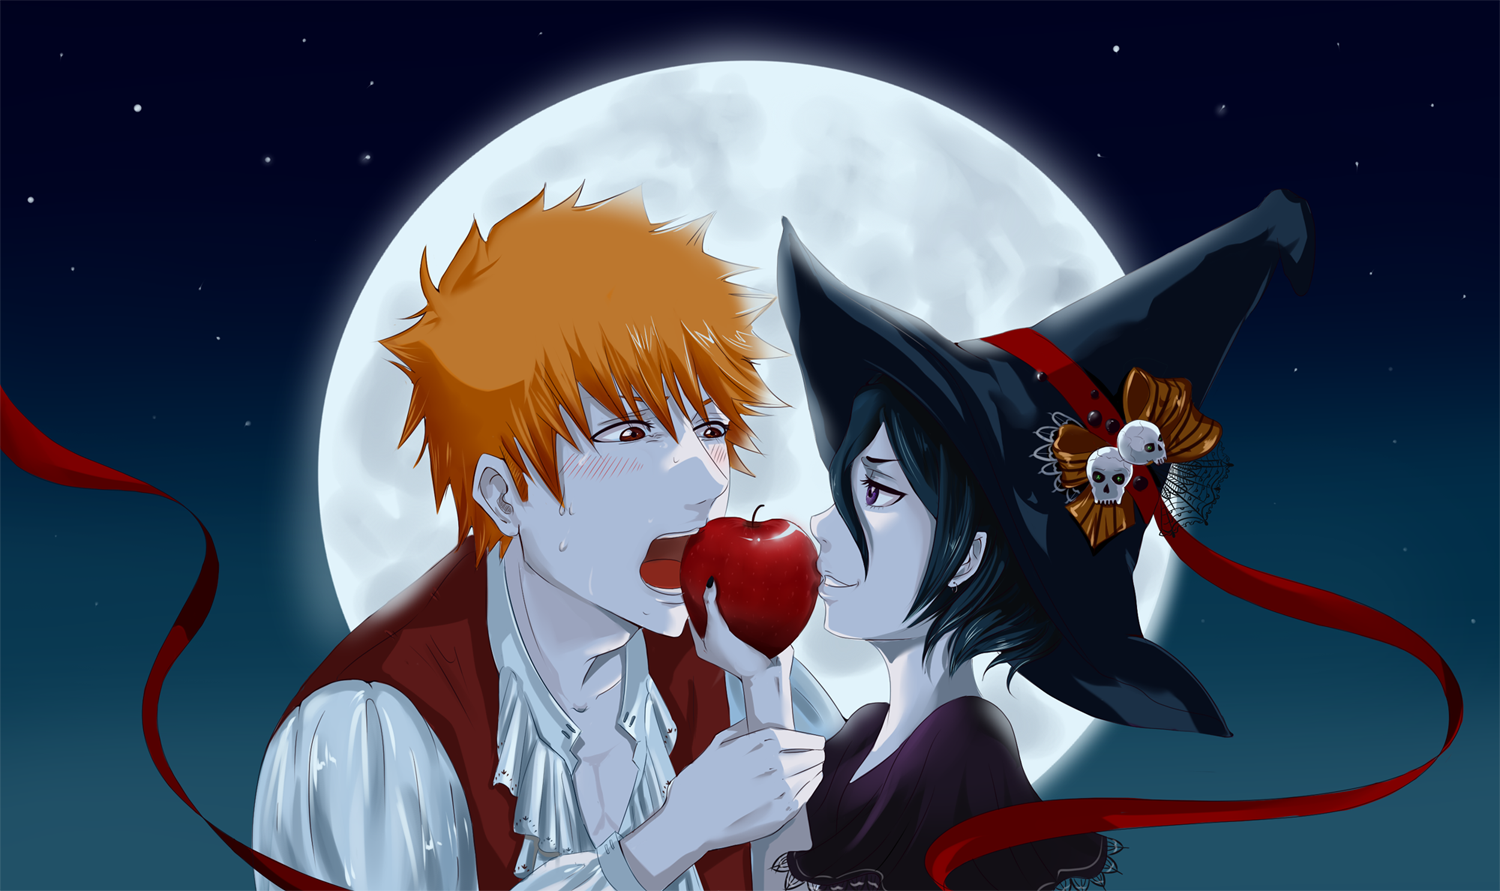 Anime Characters For Halloween : Bleach anime halloween daily art